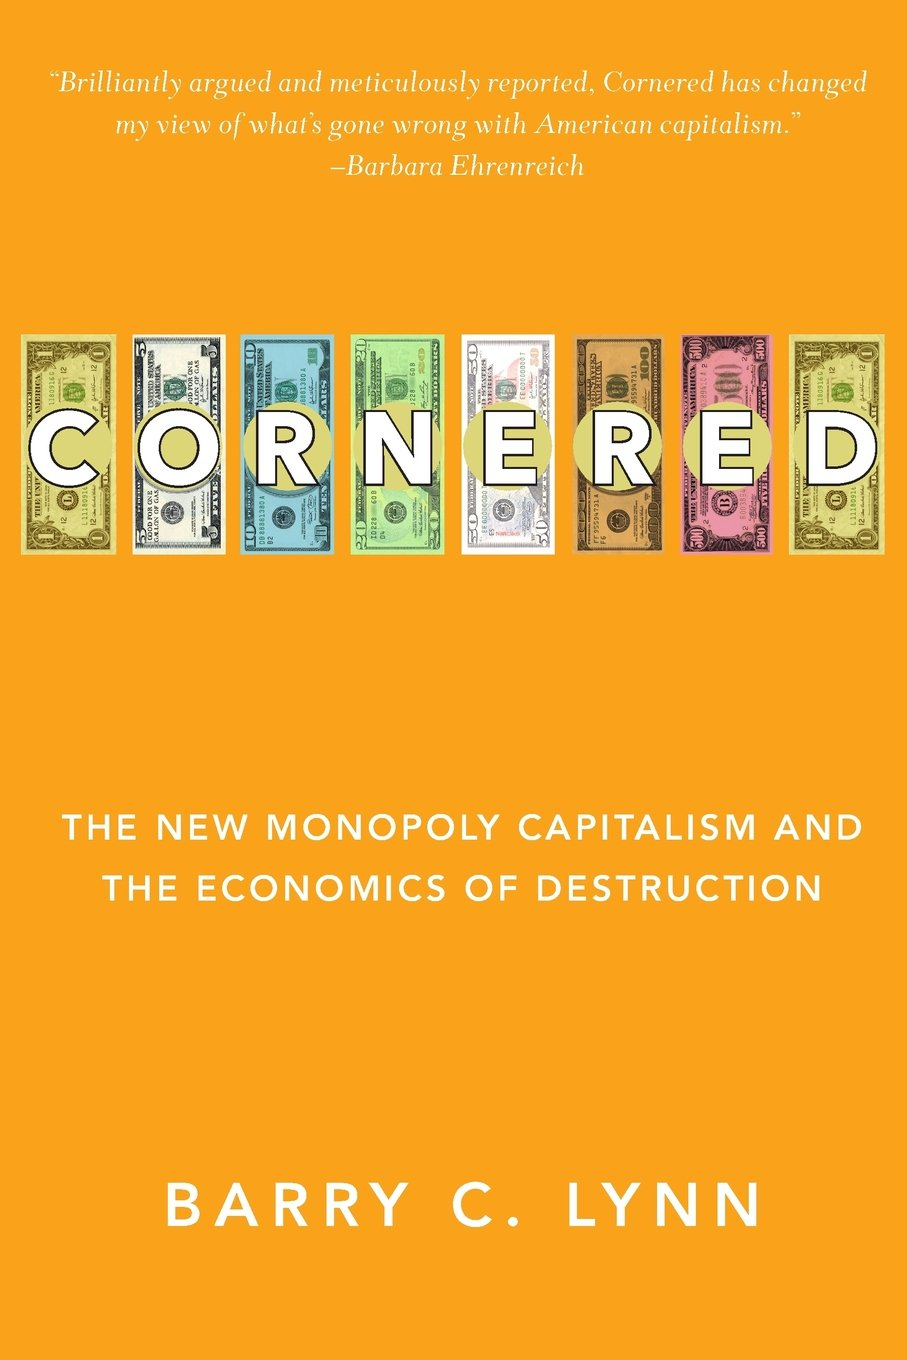 Cornered: The New Monopoly Capitalism and the Economics of Destruction PDF